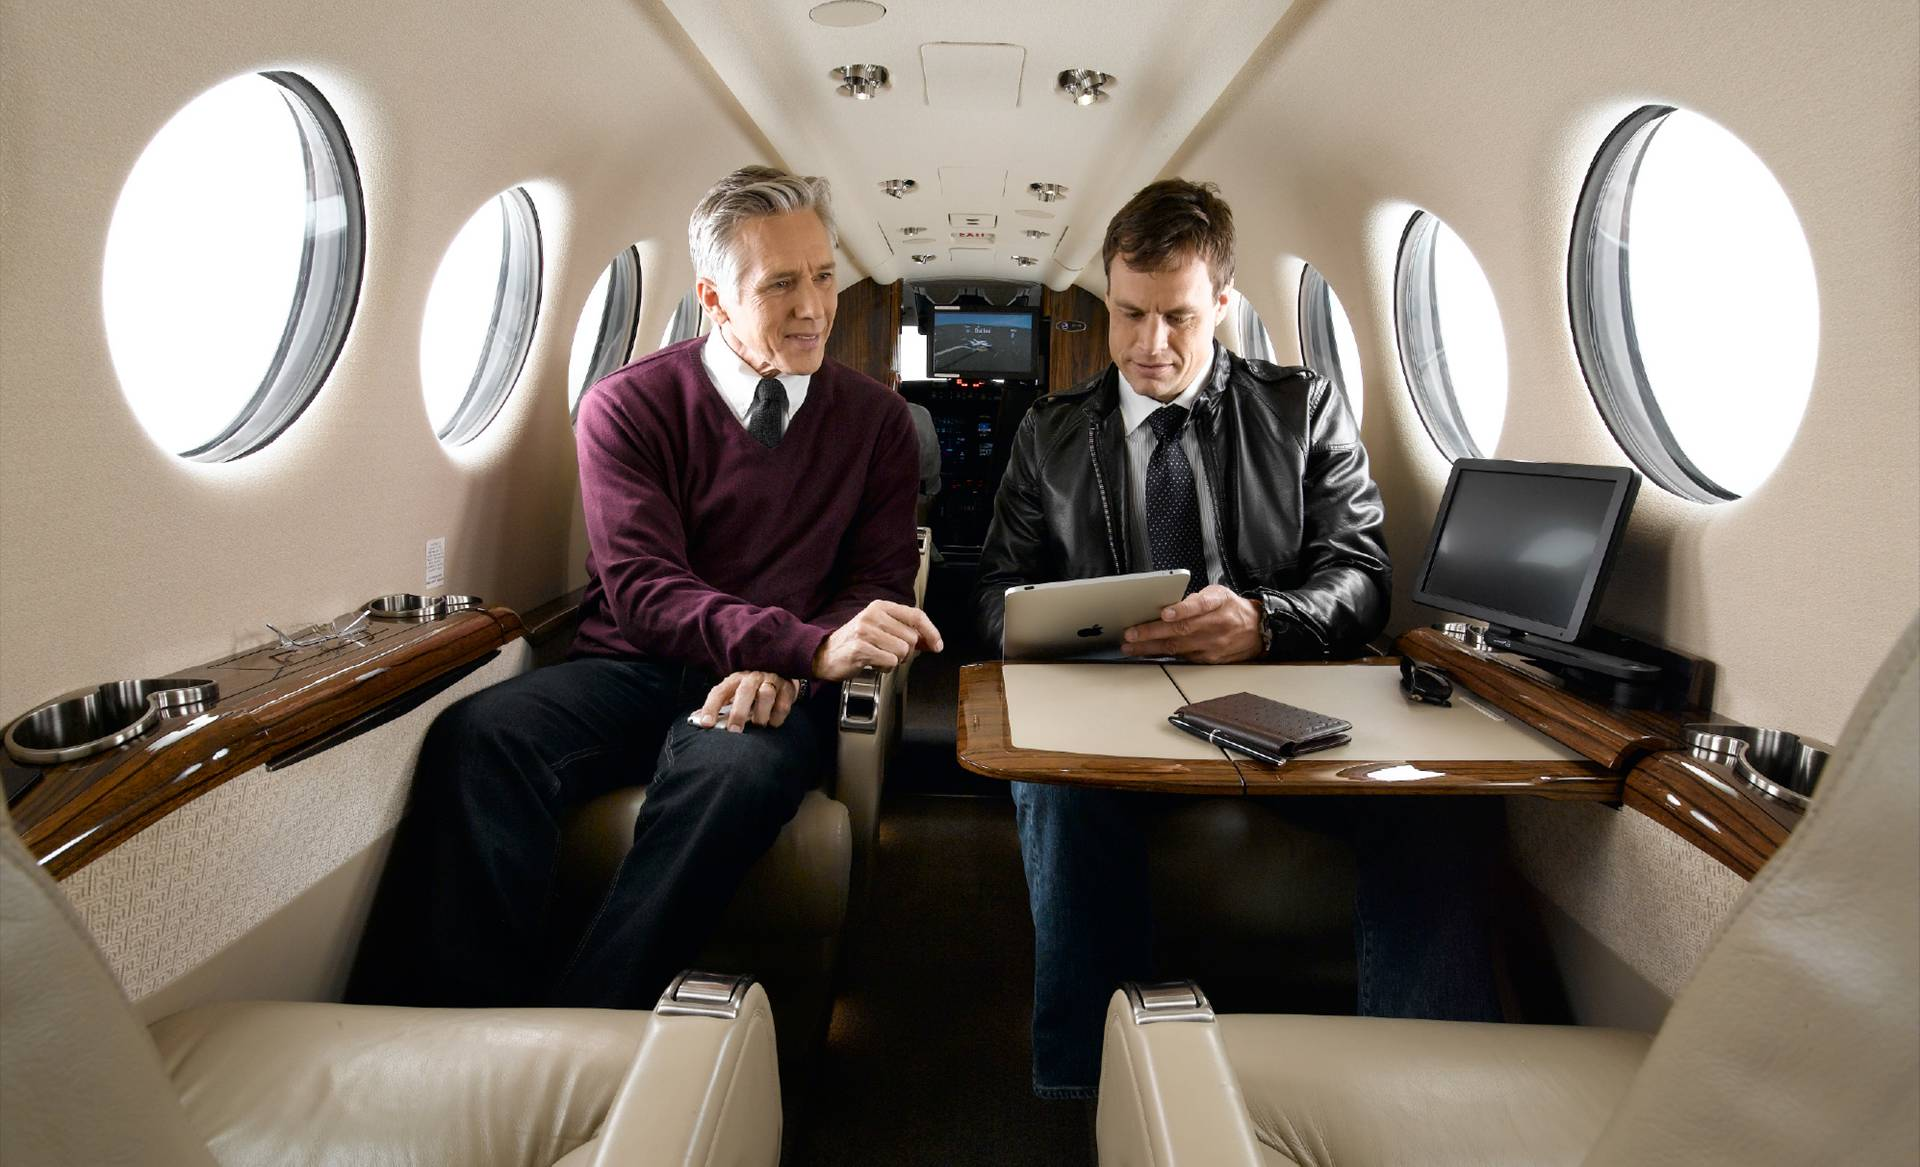 Business meeting in a King Air